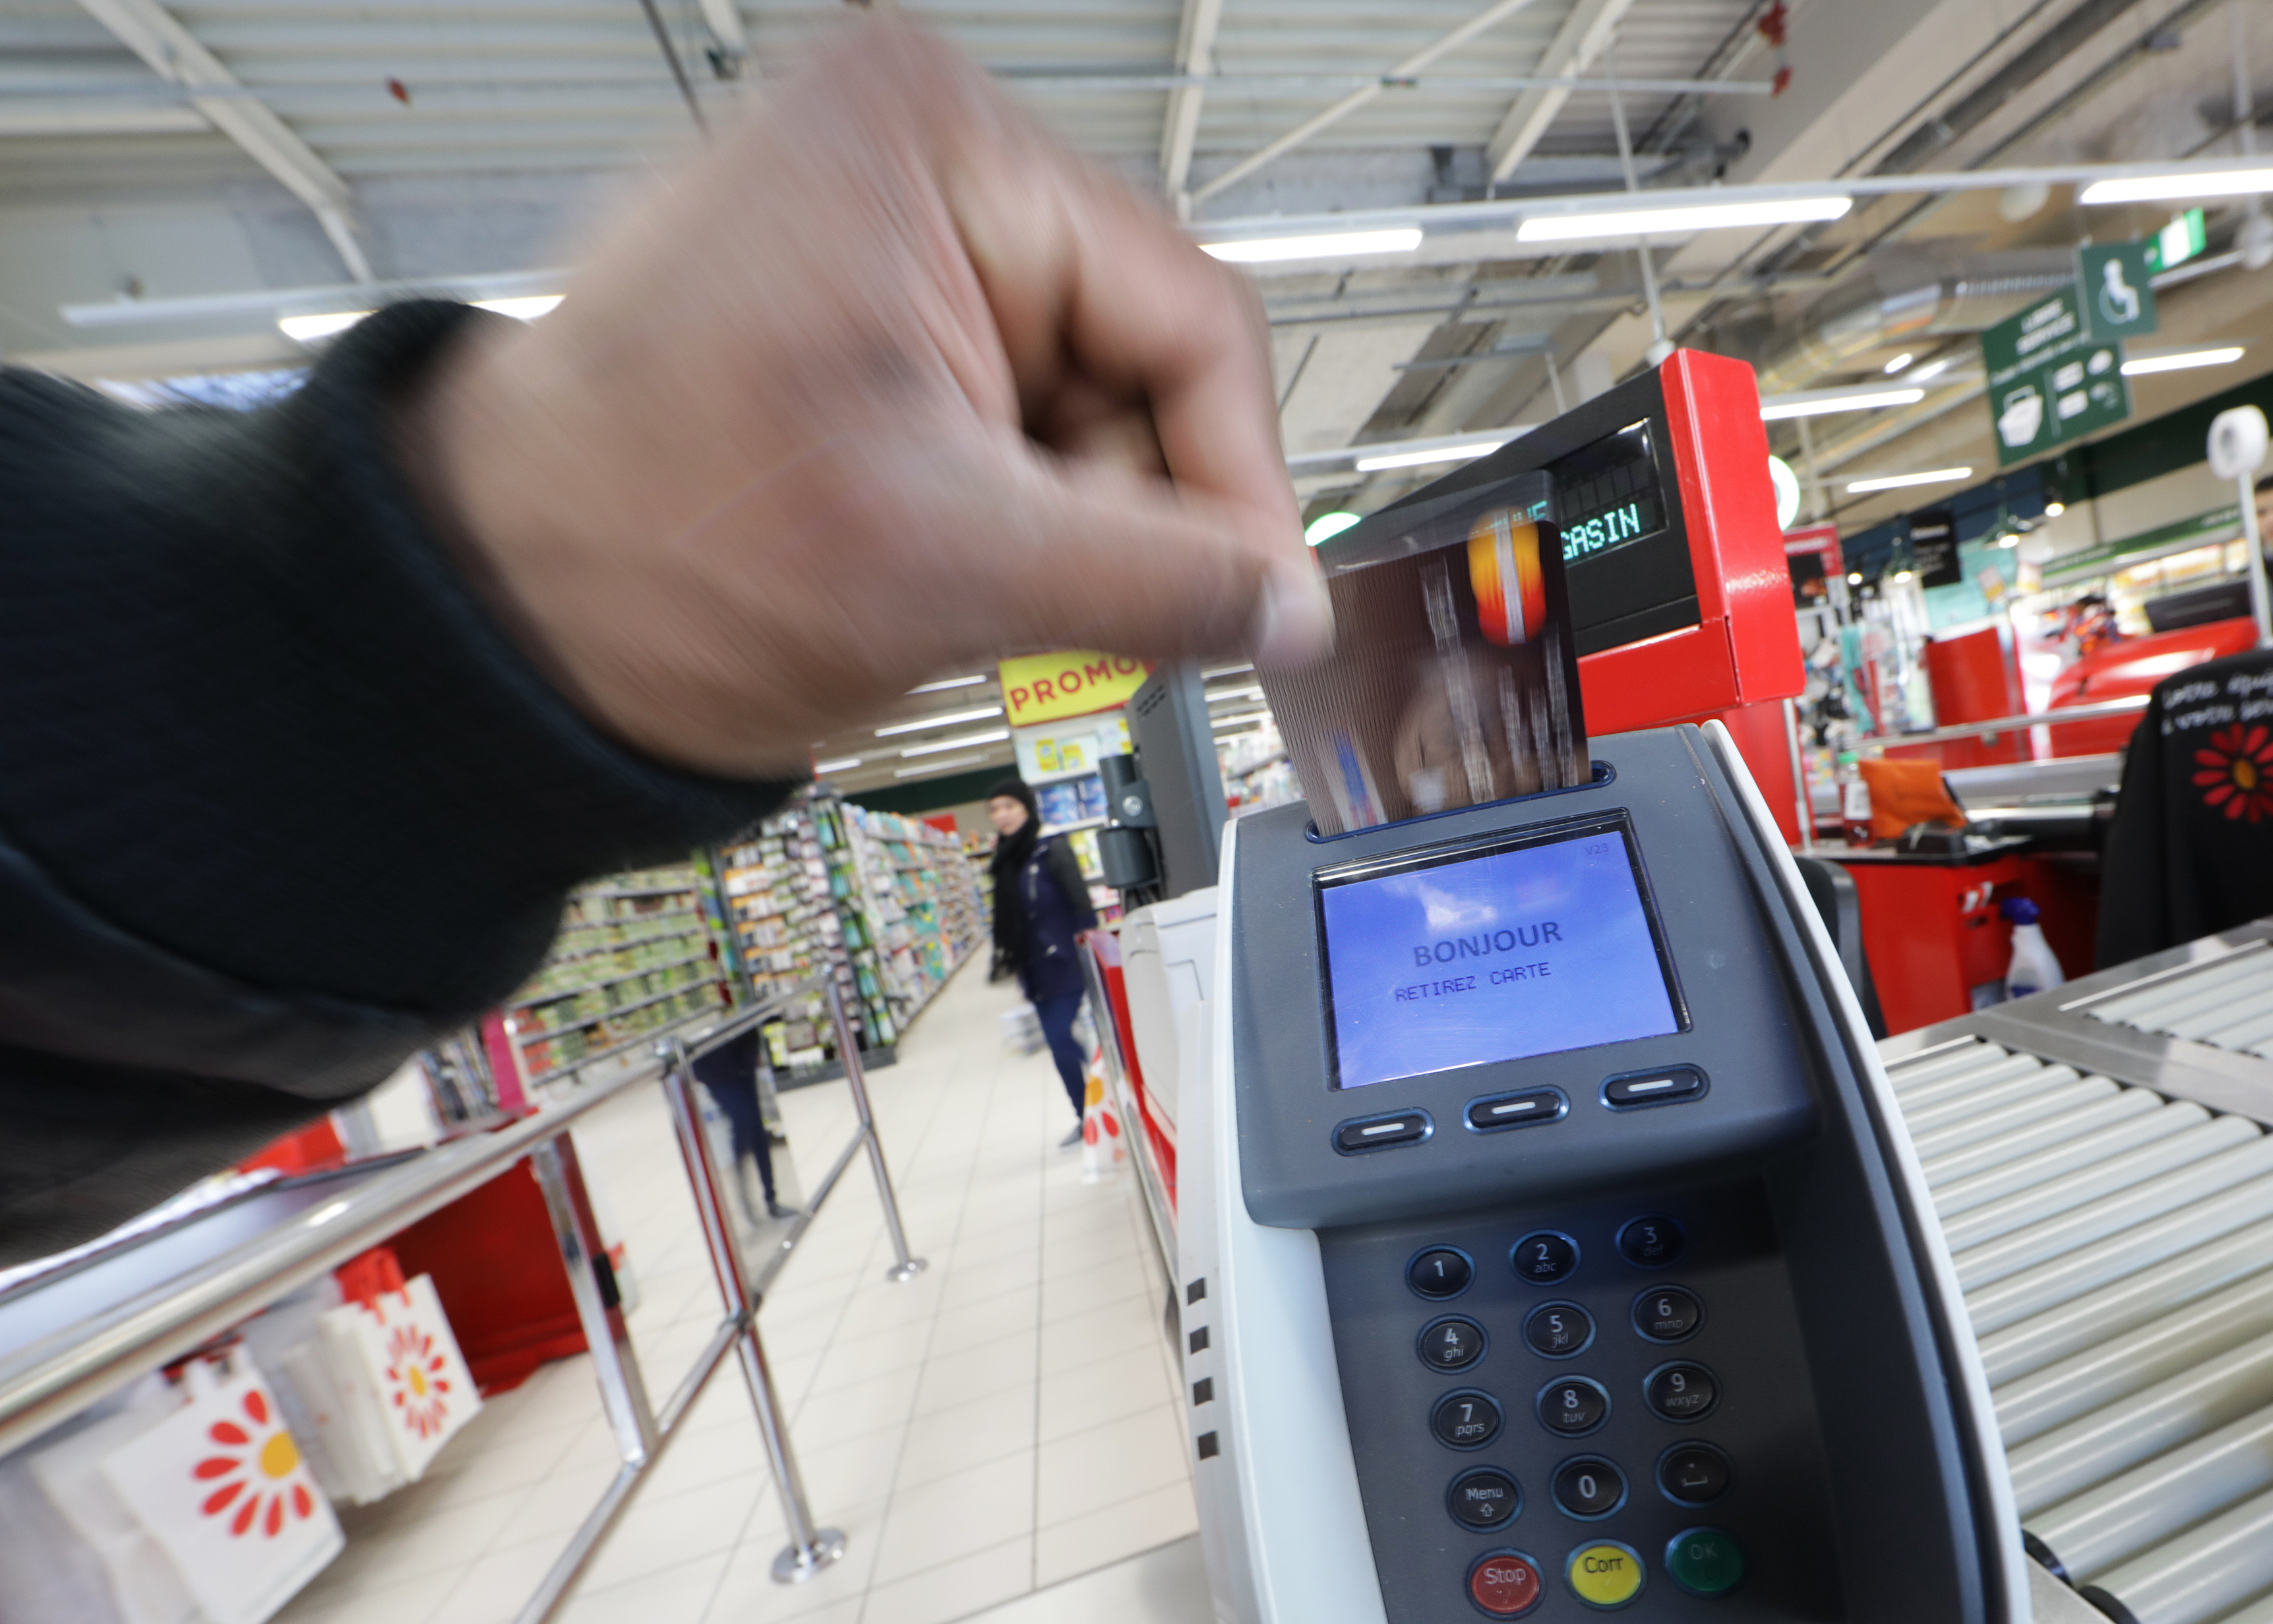 A customer uses his credit card at a terminal as he shops in a Casino supermarket in Nice, France, January 16, 2017. REUTERS/Eric Gaillard - LR1ED1G1C977P